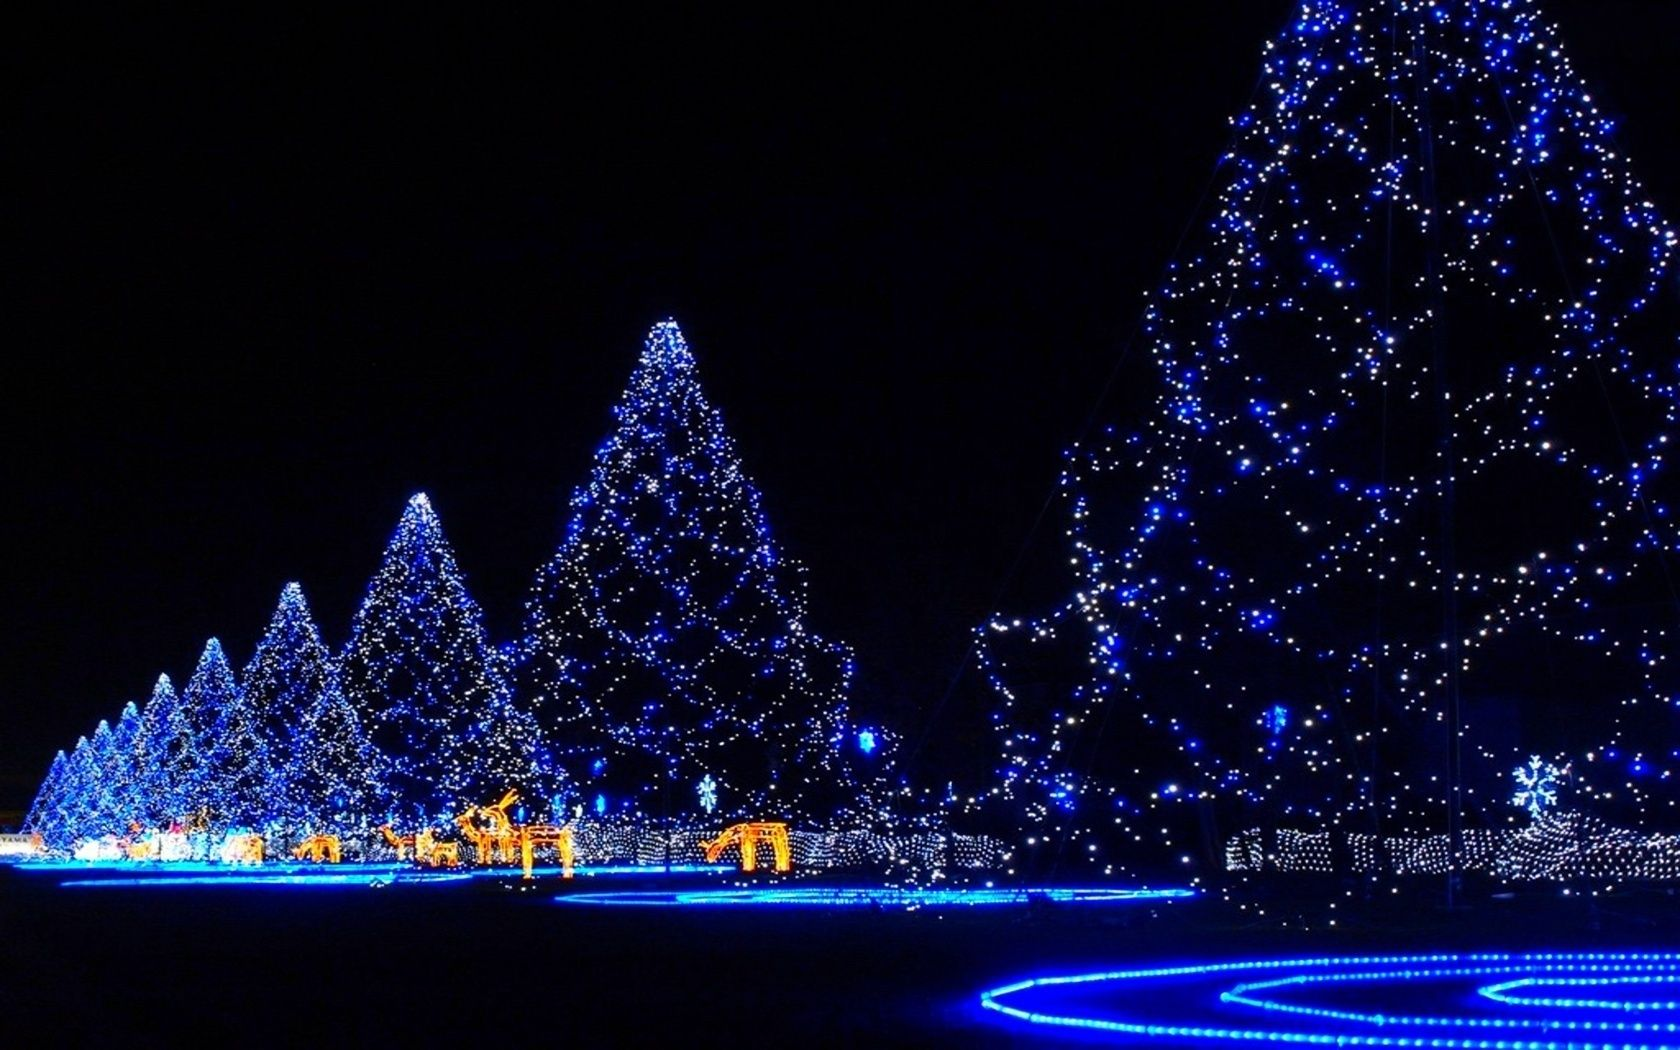 Christmas Wallpapper Google Search Blue Christmas Lights Christmas Tree Wallpaper Christmas Desktop Wallpaper